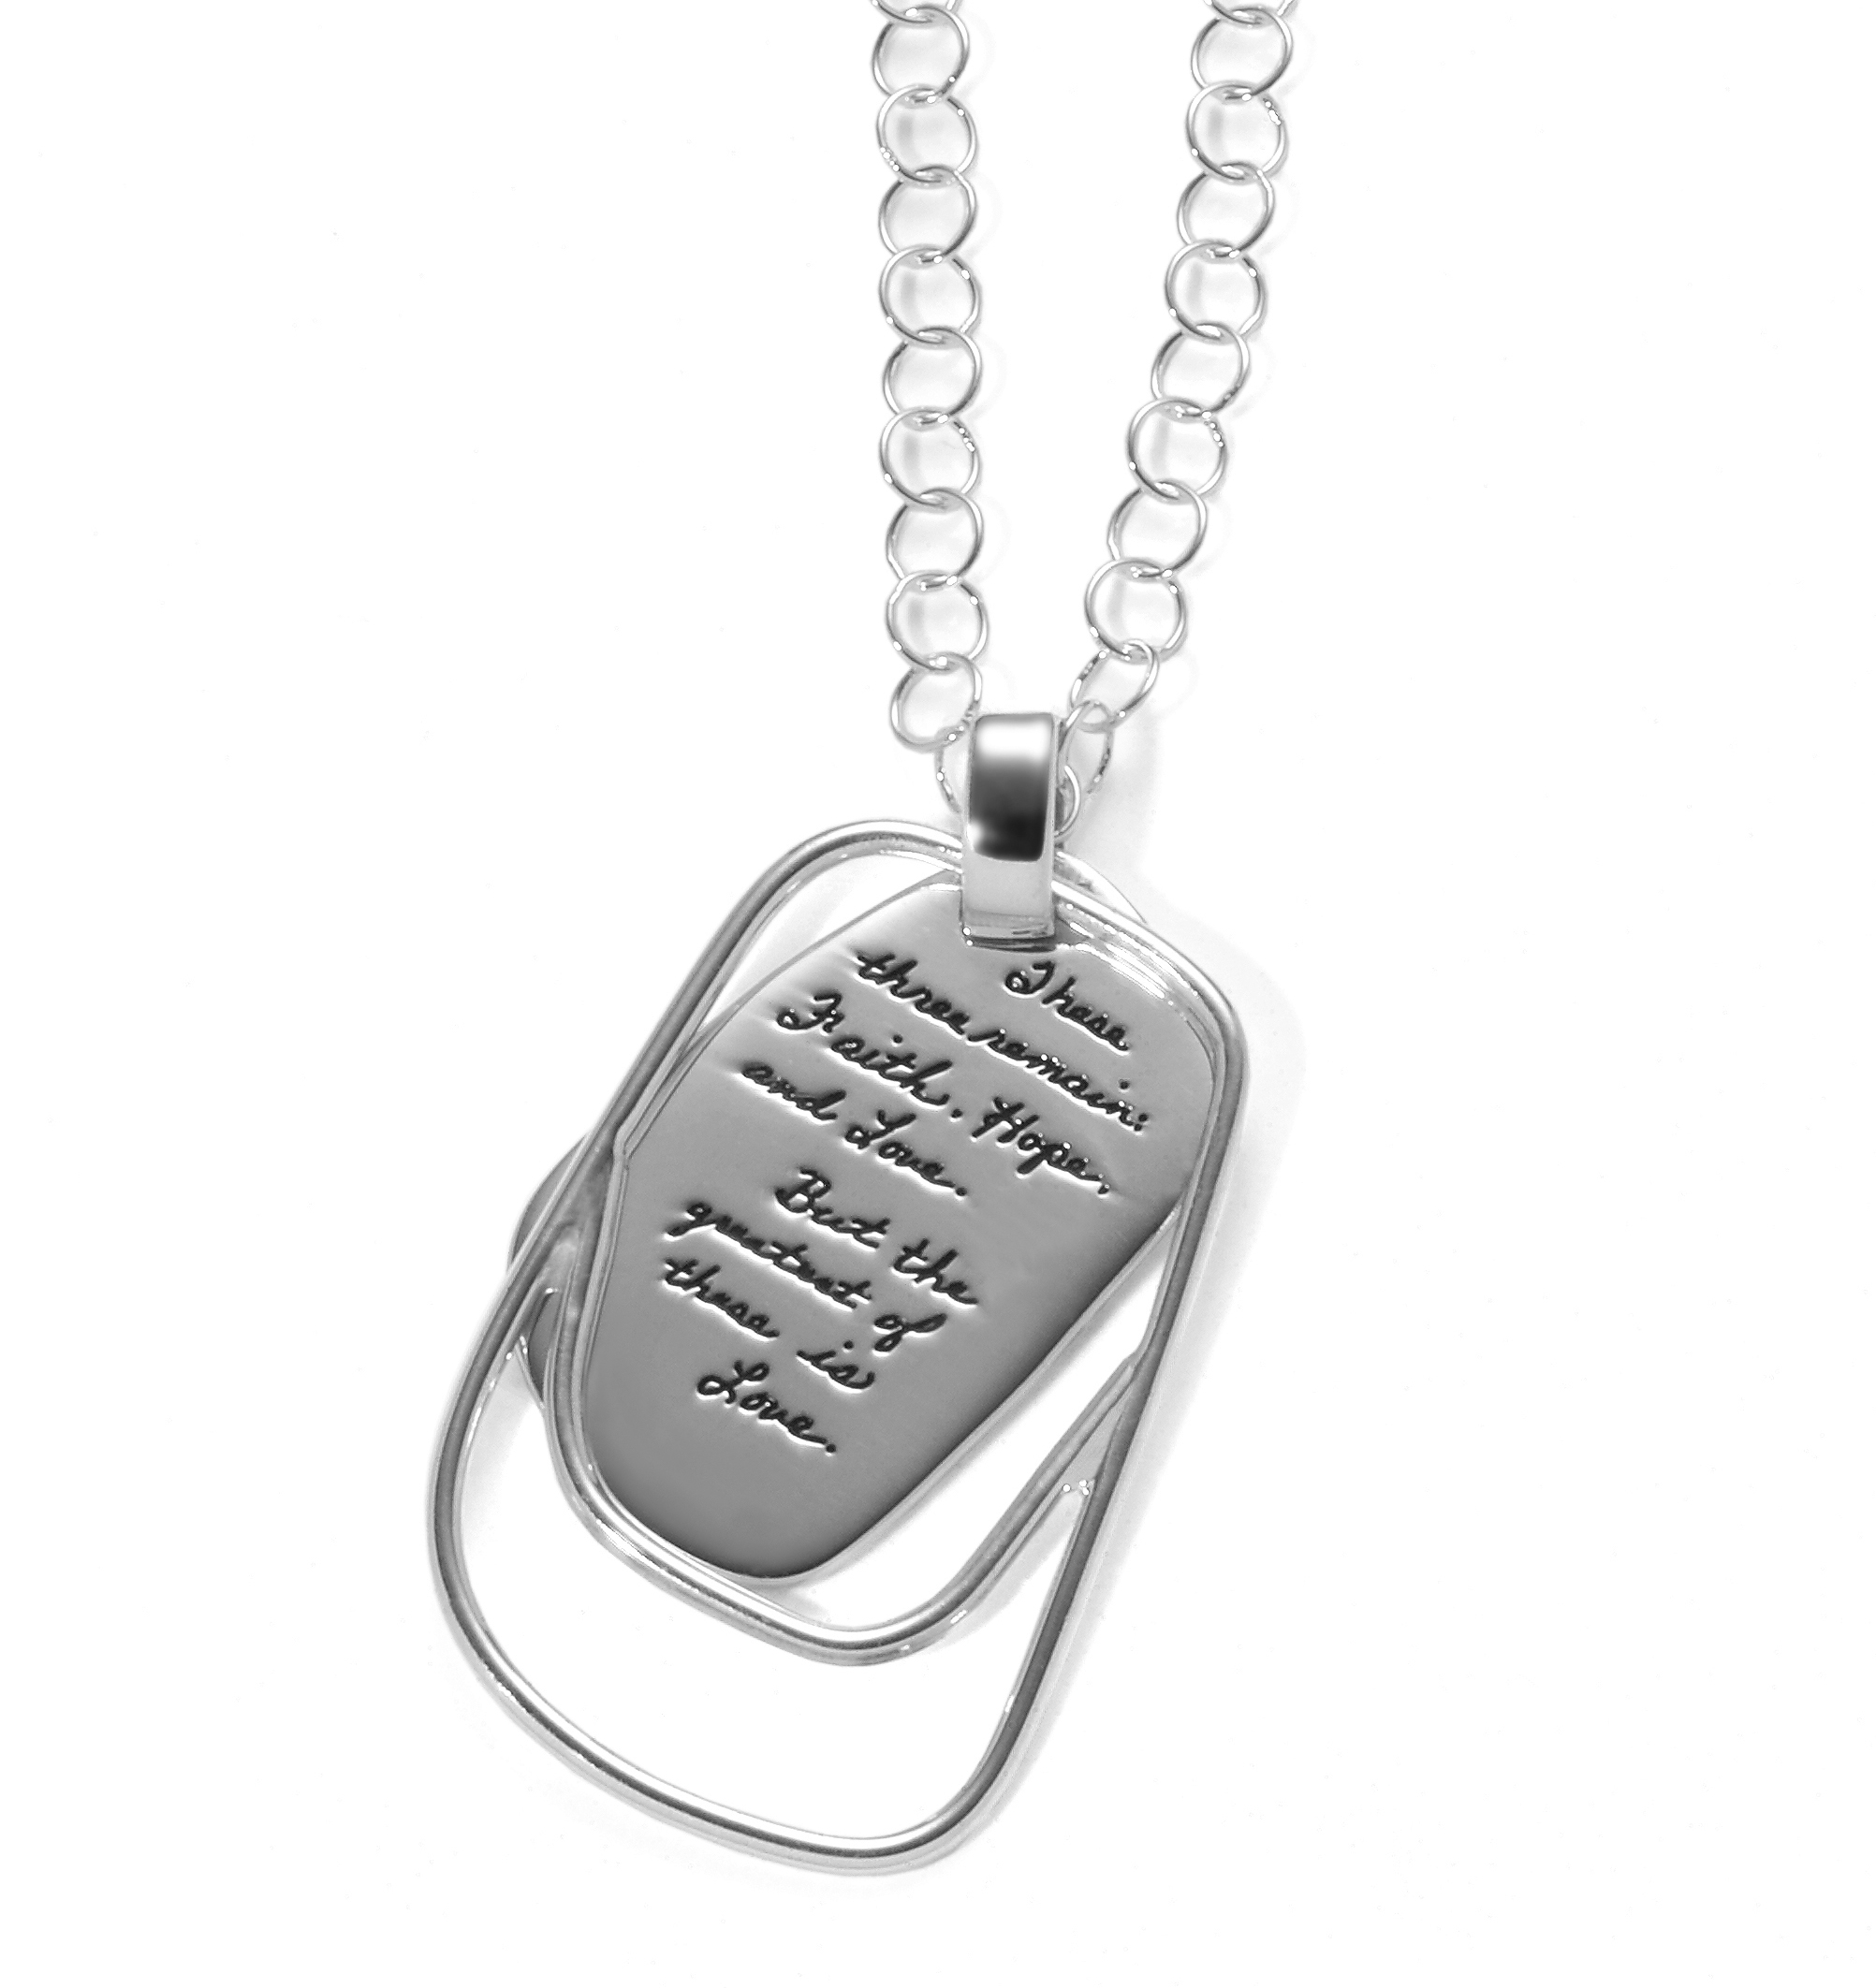 Sterling silver necklace in an irregular rectangle shape outlined with double sterling wire on the bottom. The engraved message reads: These three remain: Faith, Hope and Love. But the greatest of these is Love - 1st Corinthians